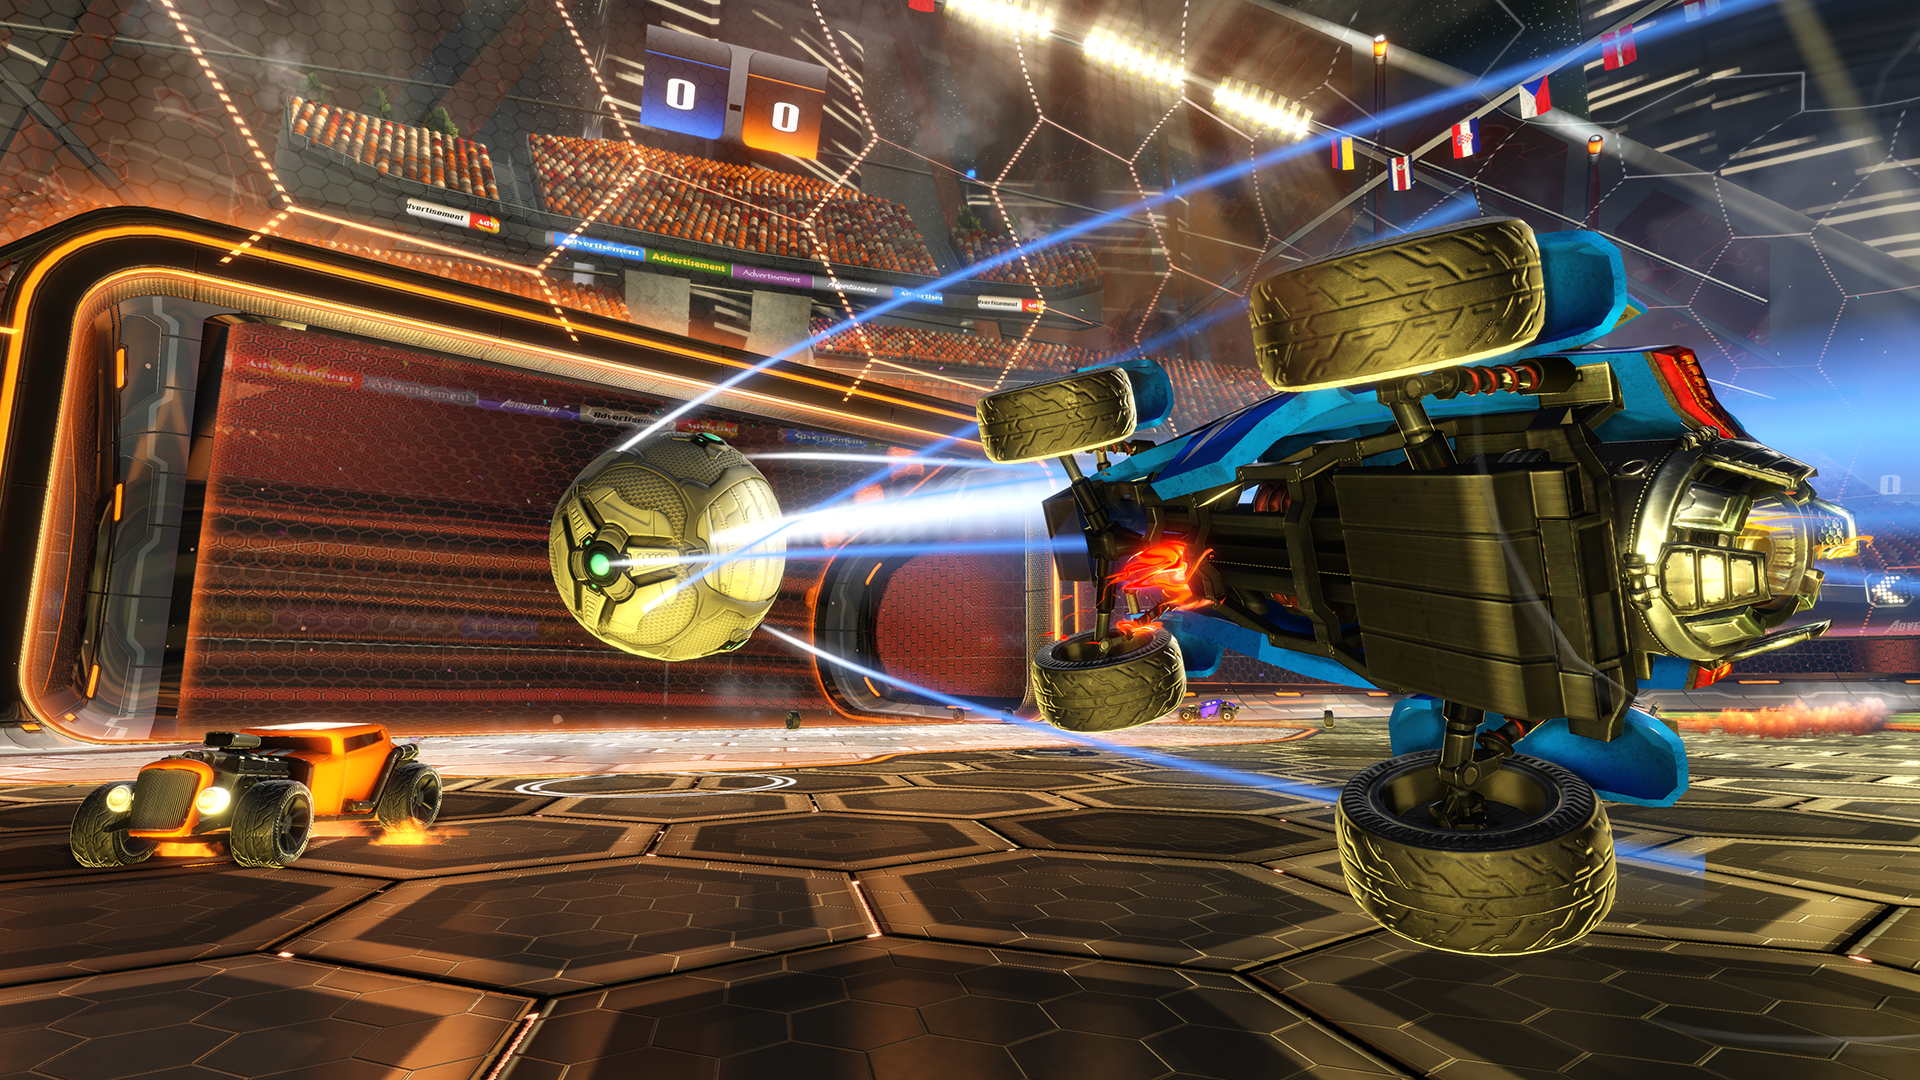 Rocket League screen cap